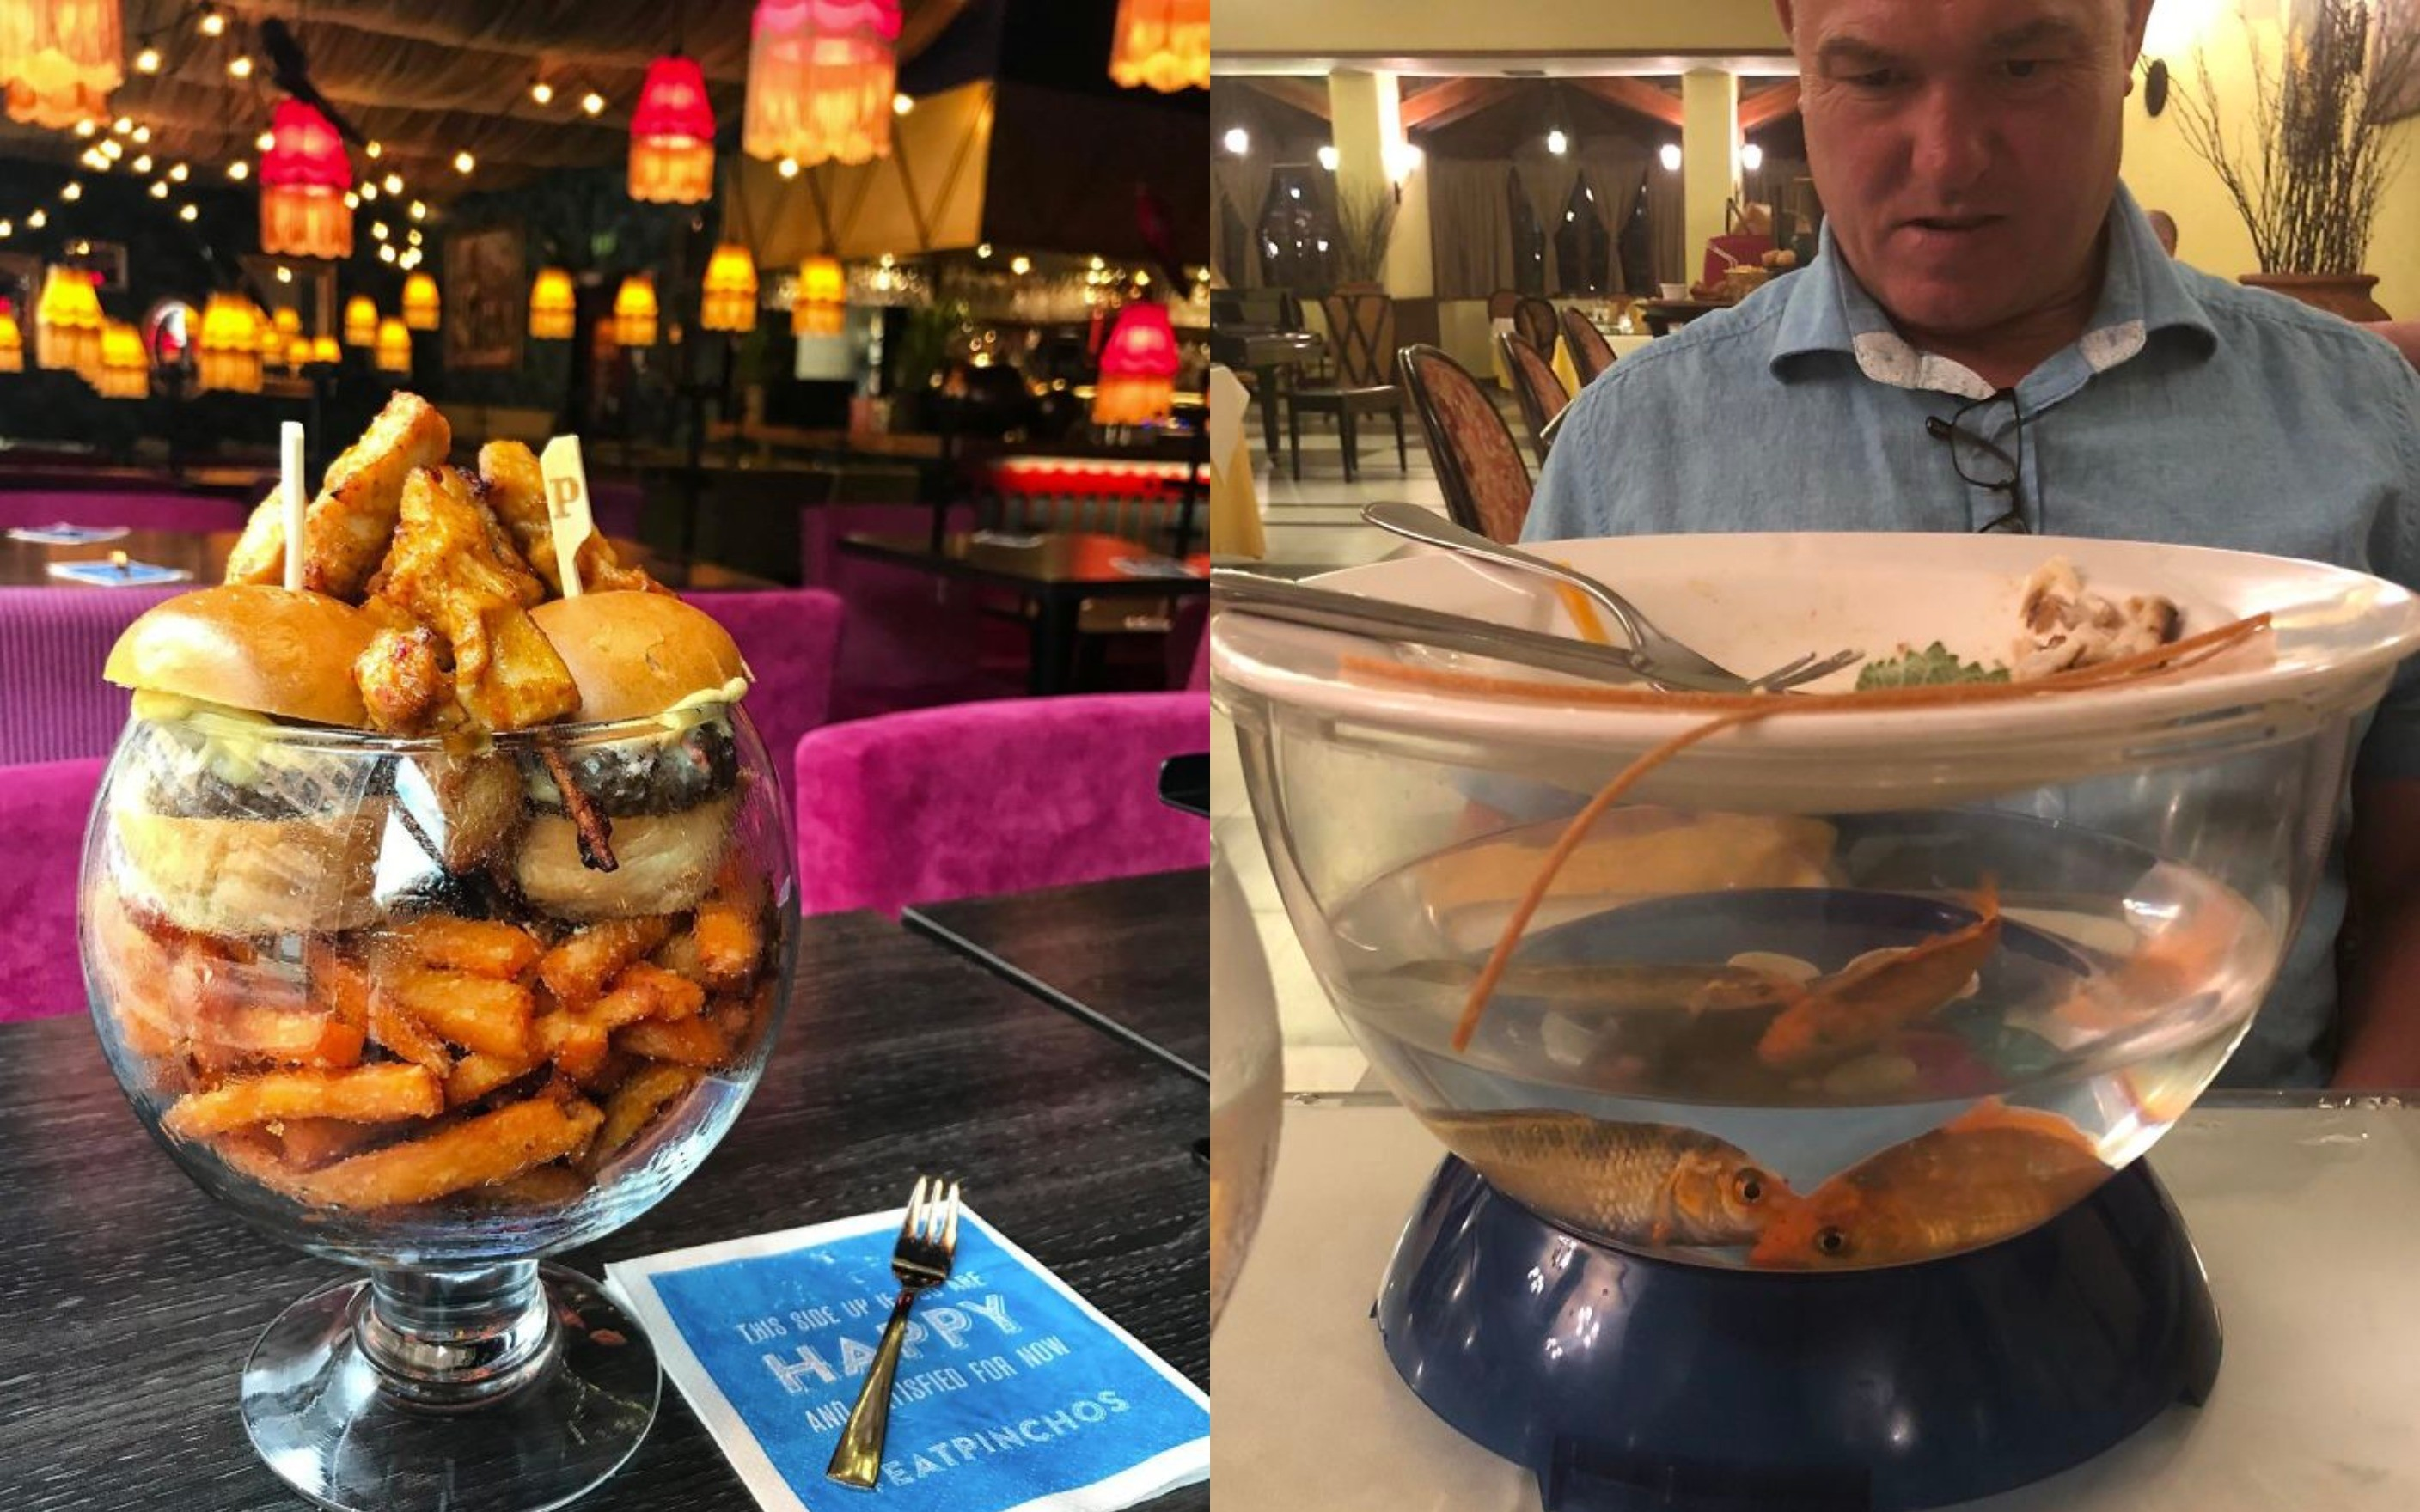 """<p>Фото © Reddit / <a href=""""https://old.reddit.com/r/WeWantPlates/comments/7sebyn/i_put_fries_in_an_enclosed_bowl_so_they_steam_and/"""" target=""""_self"""">WeWantPlates</a>, Reddit / <a href=""""https://old.reddit.com/r/WeWantPlates/comments/blcey9/fish_are_friends_not_food/?ref=share&ref_source=link"""" target=""""_self"""">dr_harlequin</a></p>"""